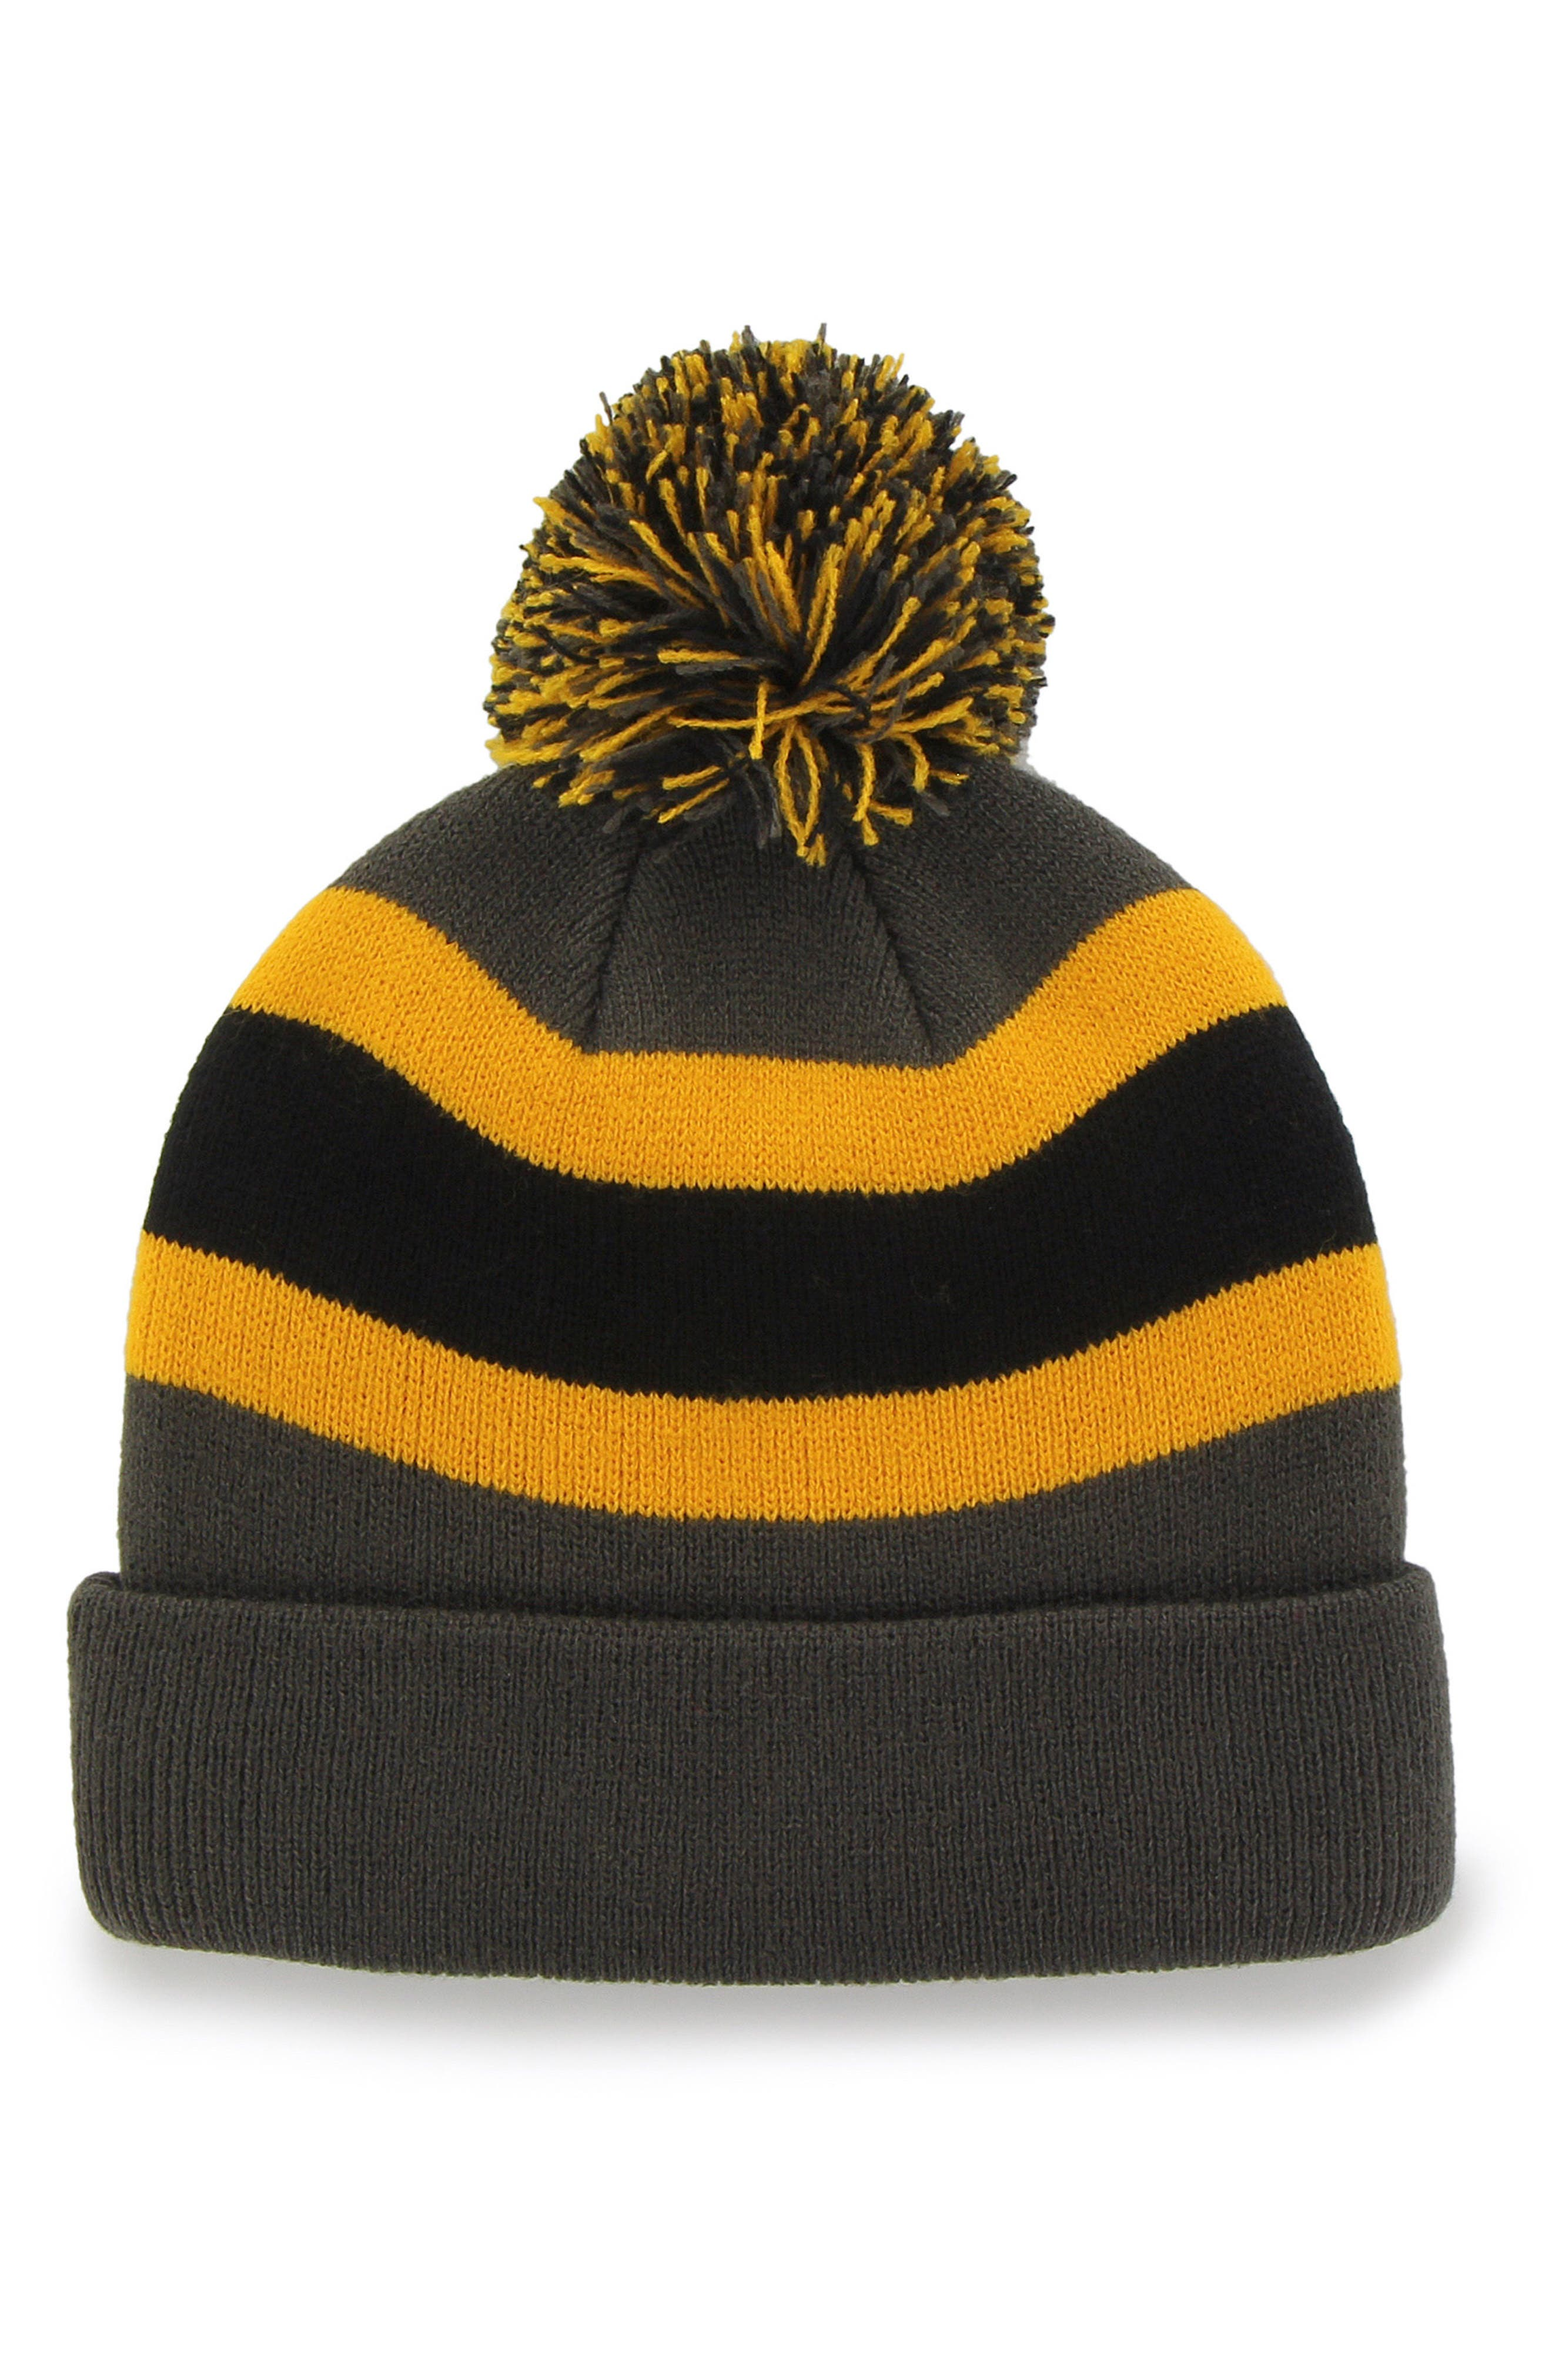 NFL Breakaway Knit Cap,                             Alternate thumbnail 7, color,